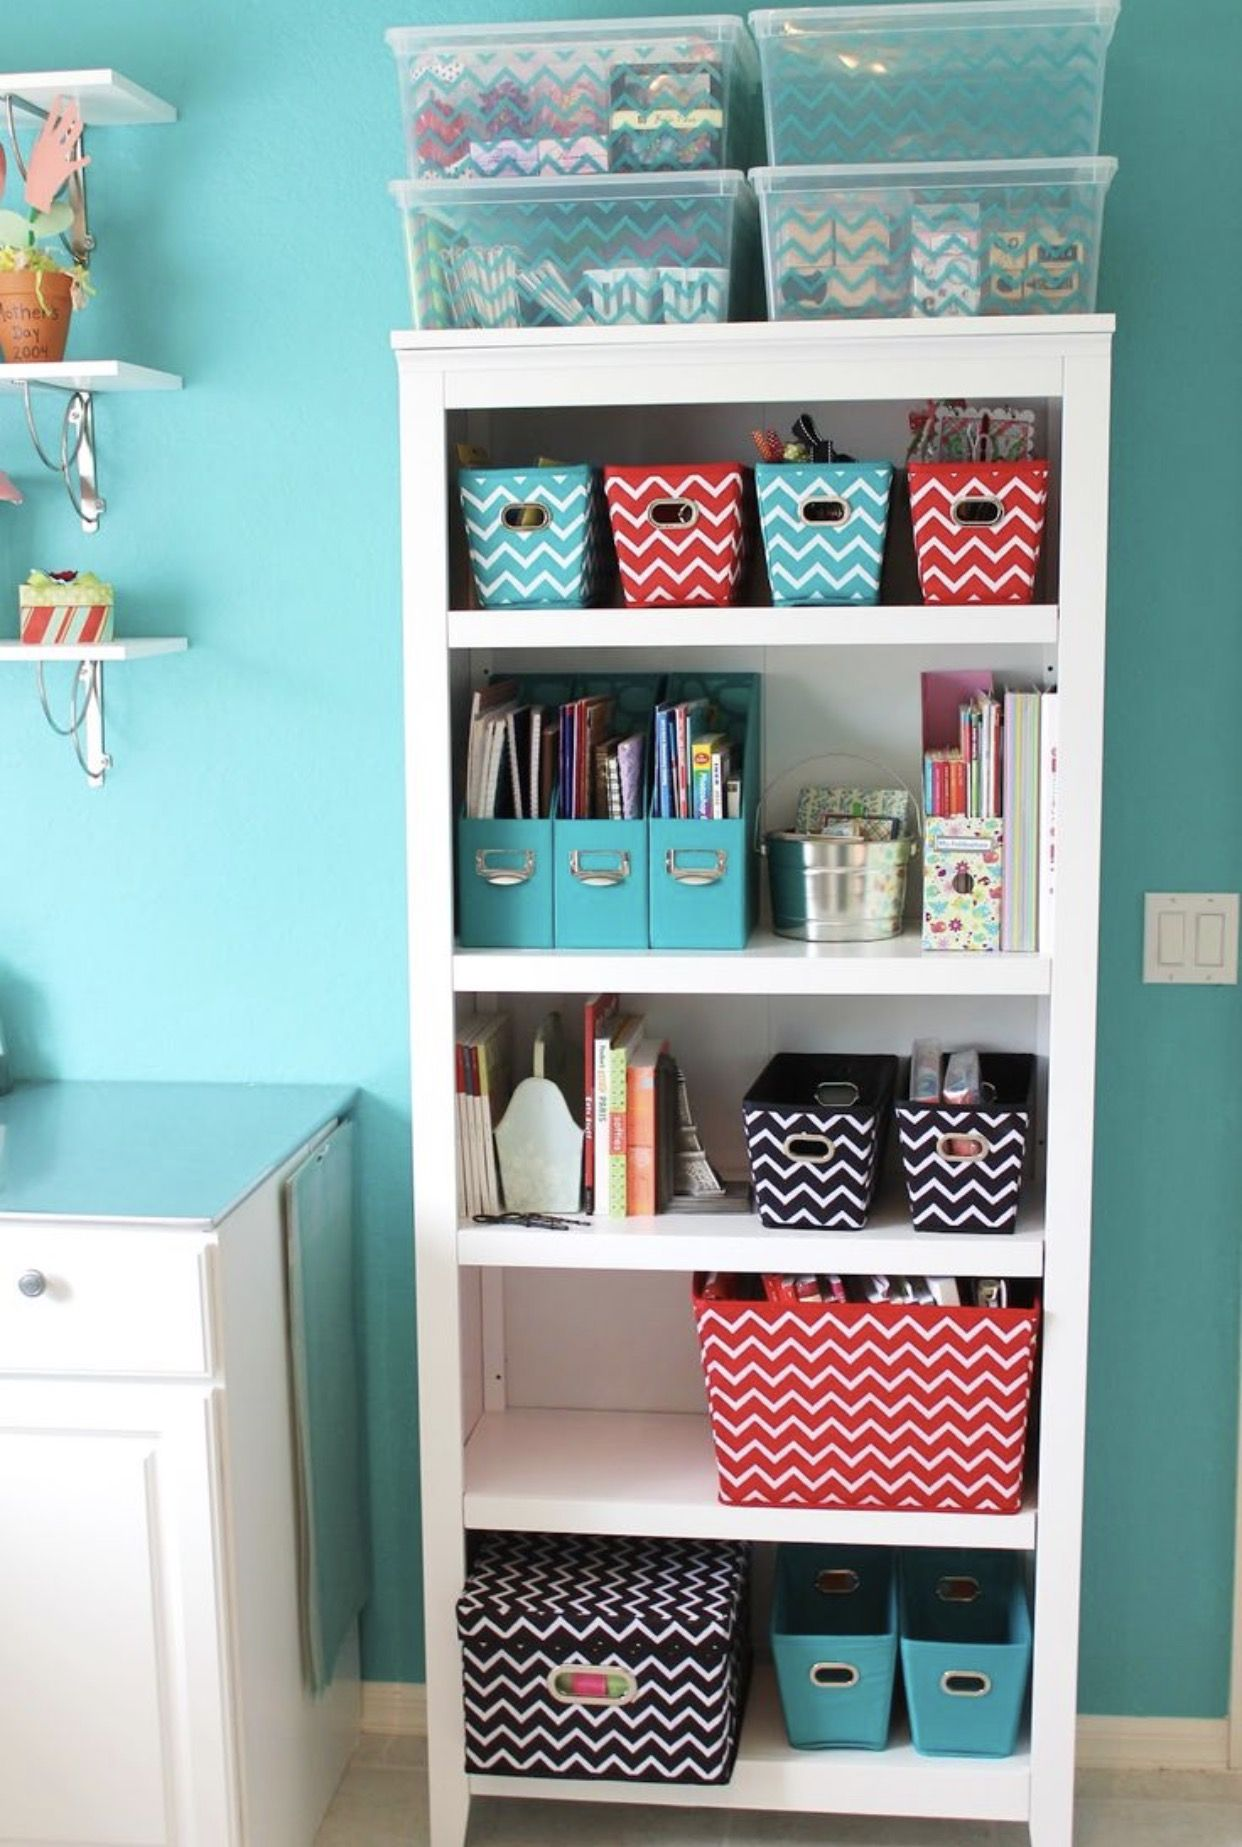 pinmoira on bedroom/organize/lilly | pinterest | organizations